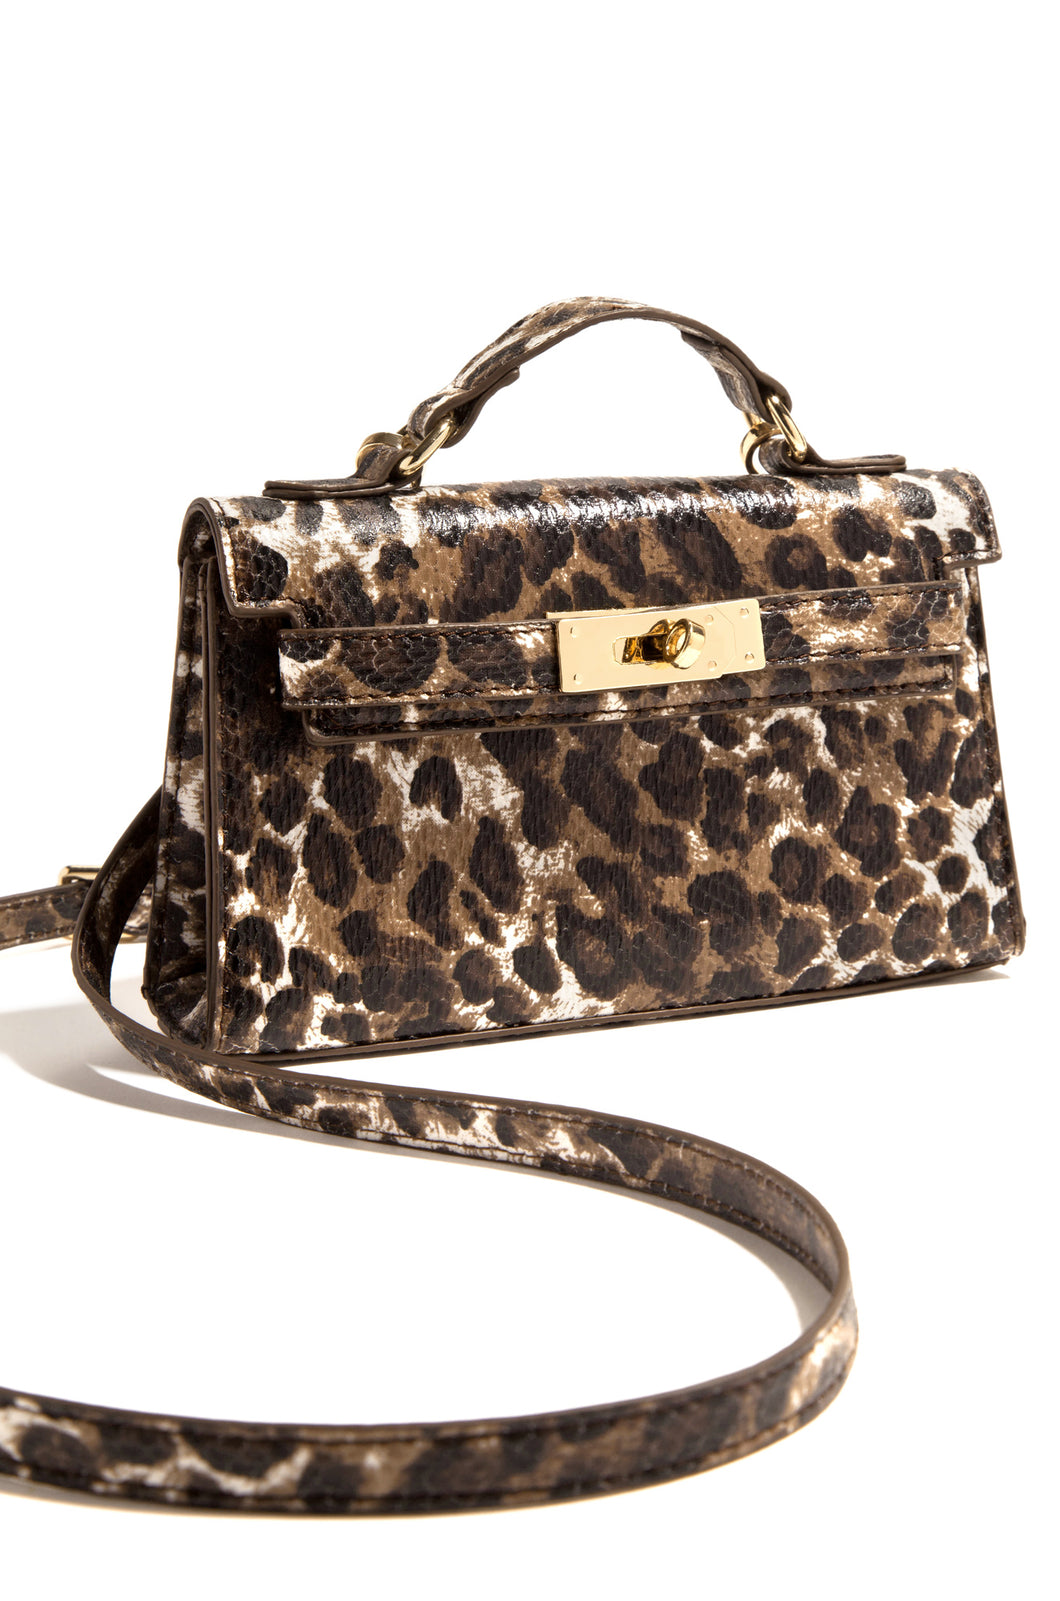 She's In Charge Bag - Leopard